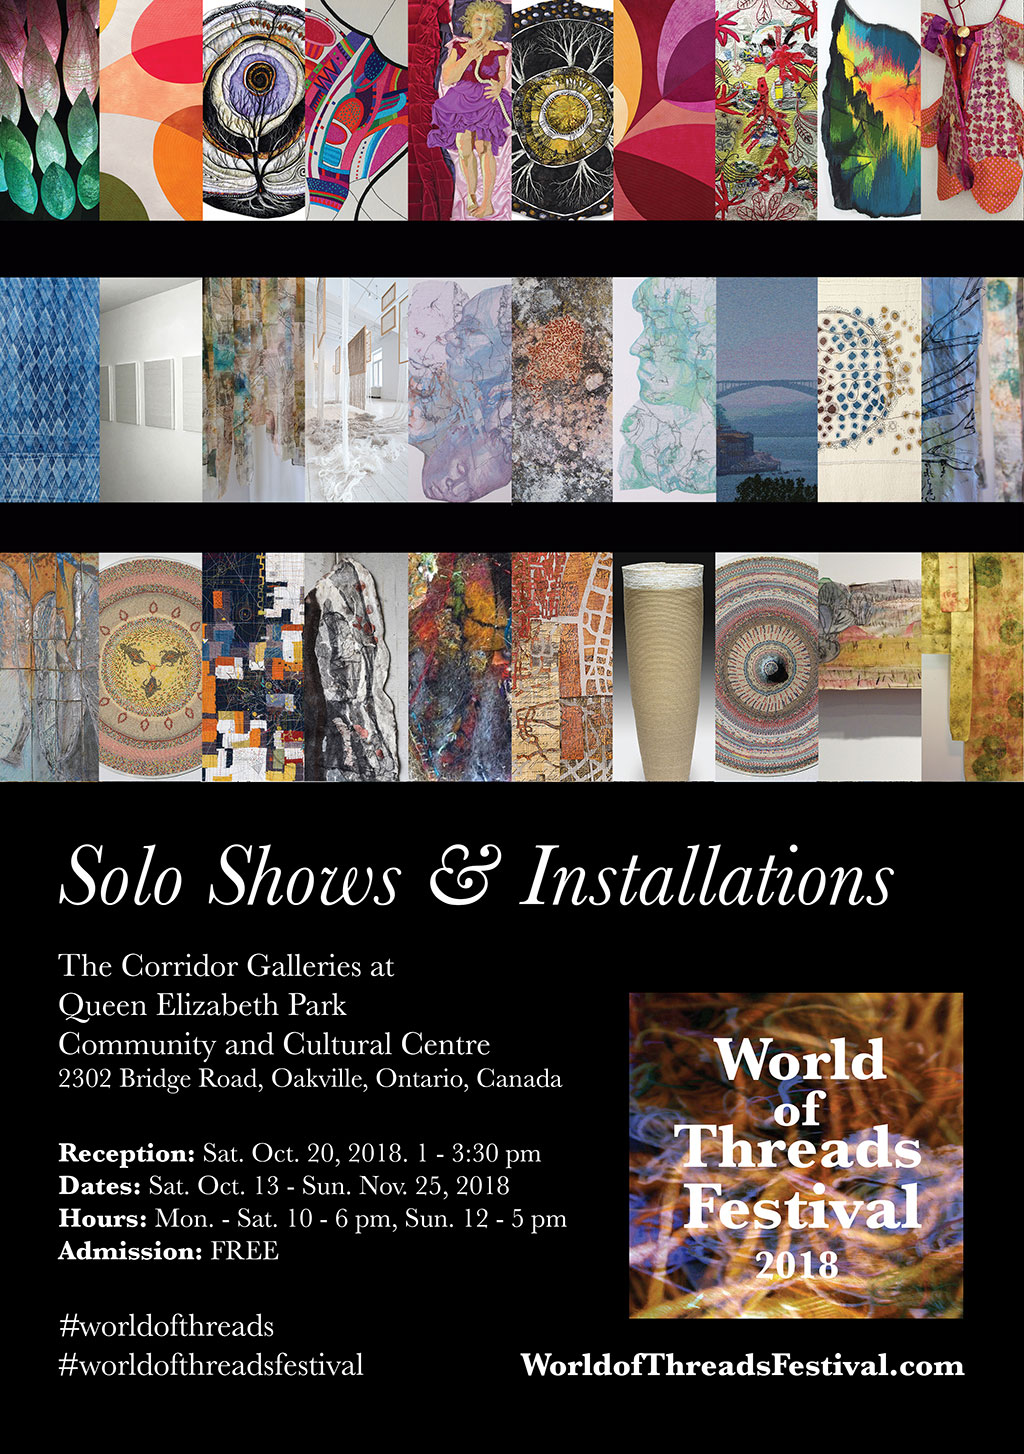 02-solo-shows-installations-world-of-threads-festival-18-email.jpg